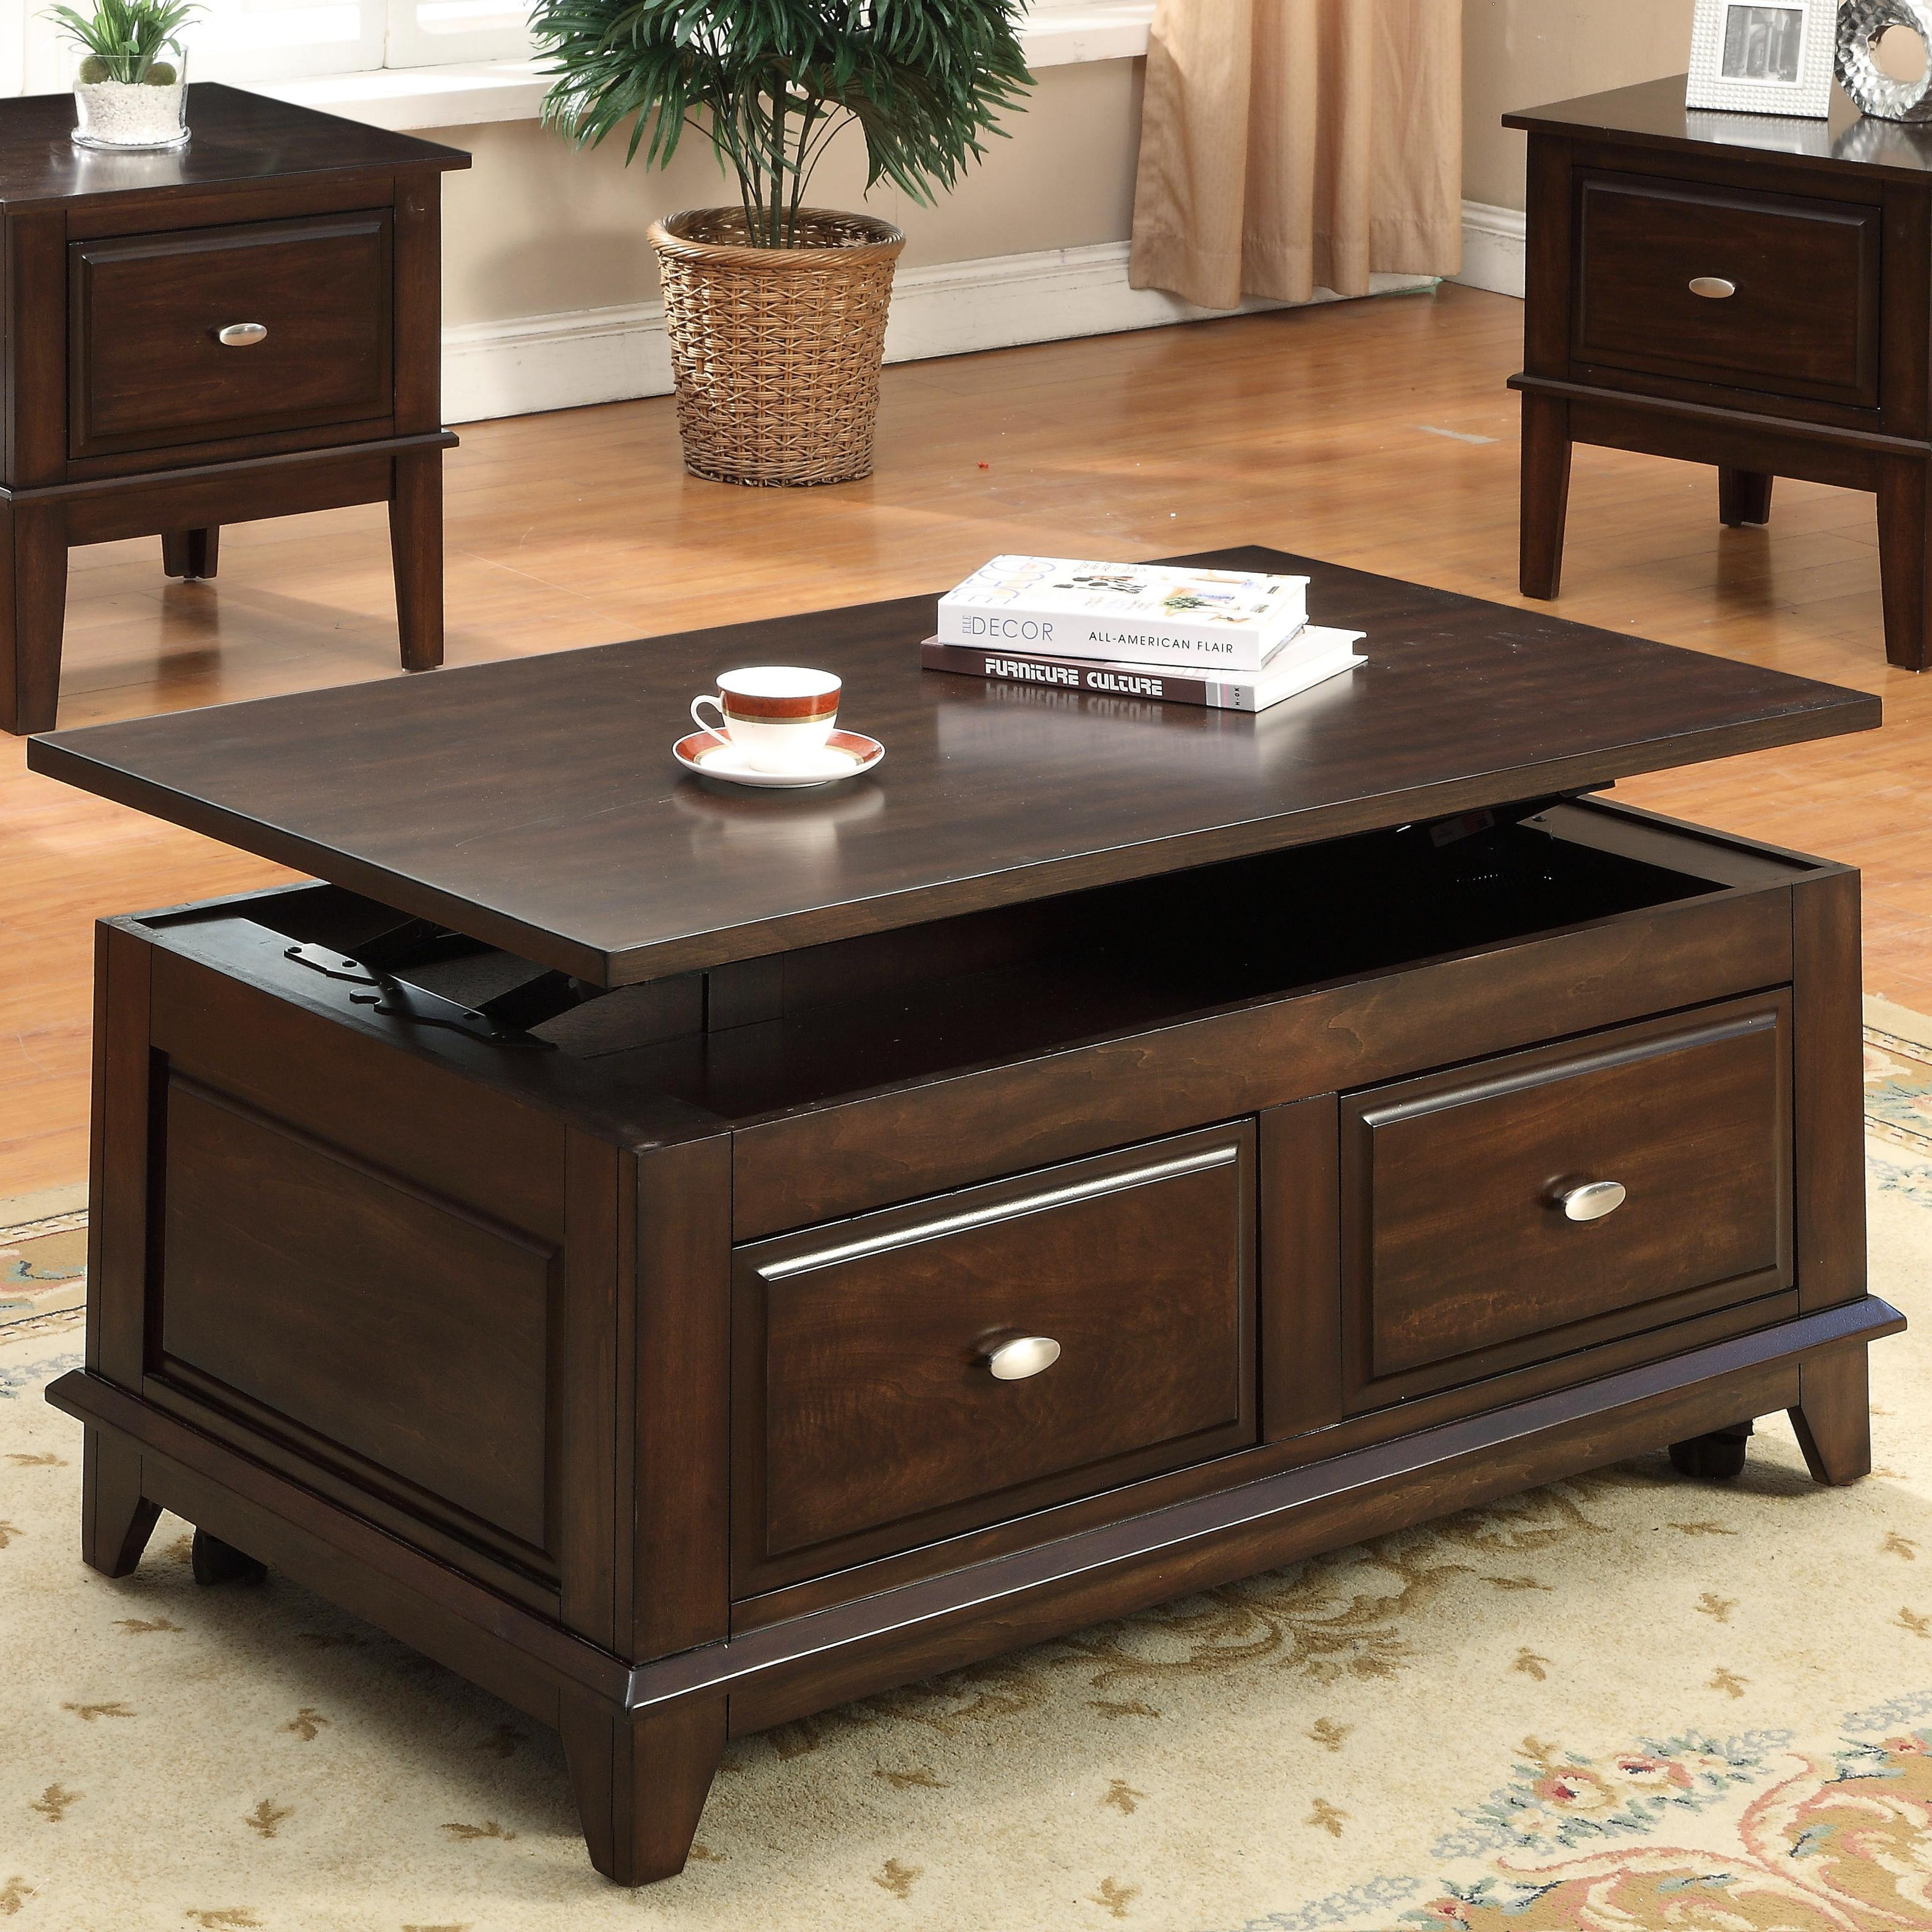 Crown Mark Harmon Lift Top Coffee Table With Casters Royal inside dimensions 3156 X 3156